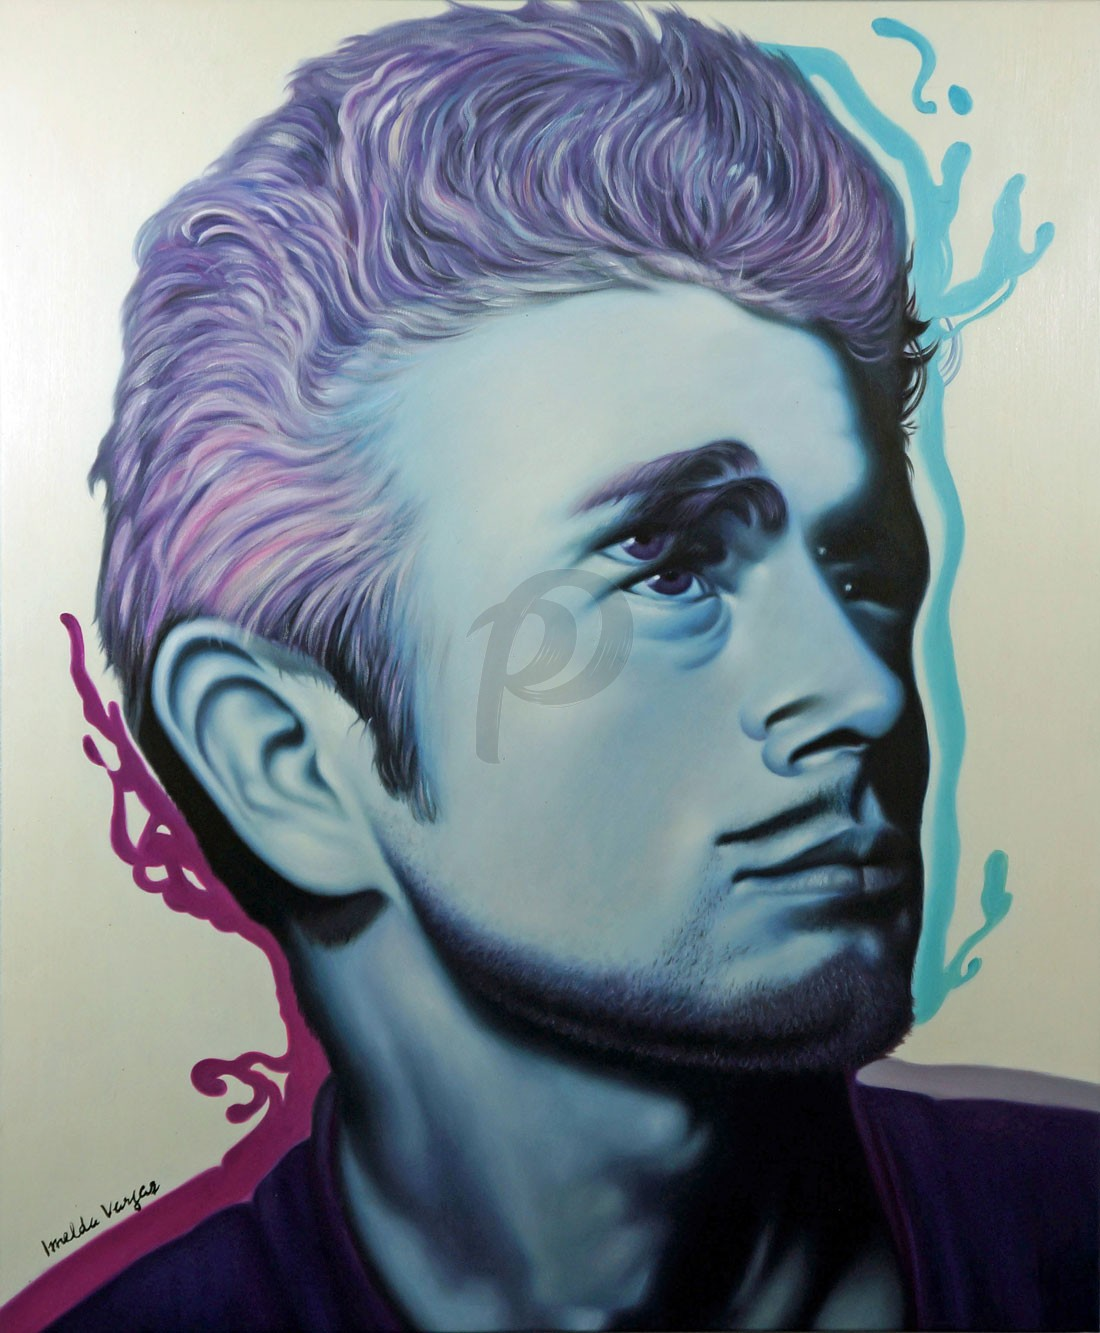 James Dean - Forever Young by Imelda Vargas (Hand-Painted Original)